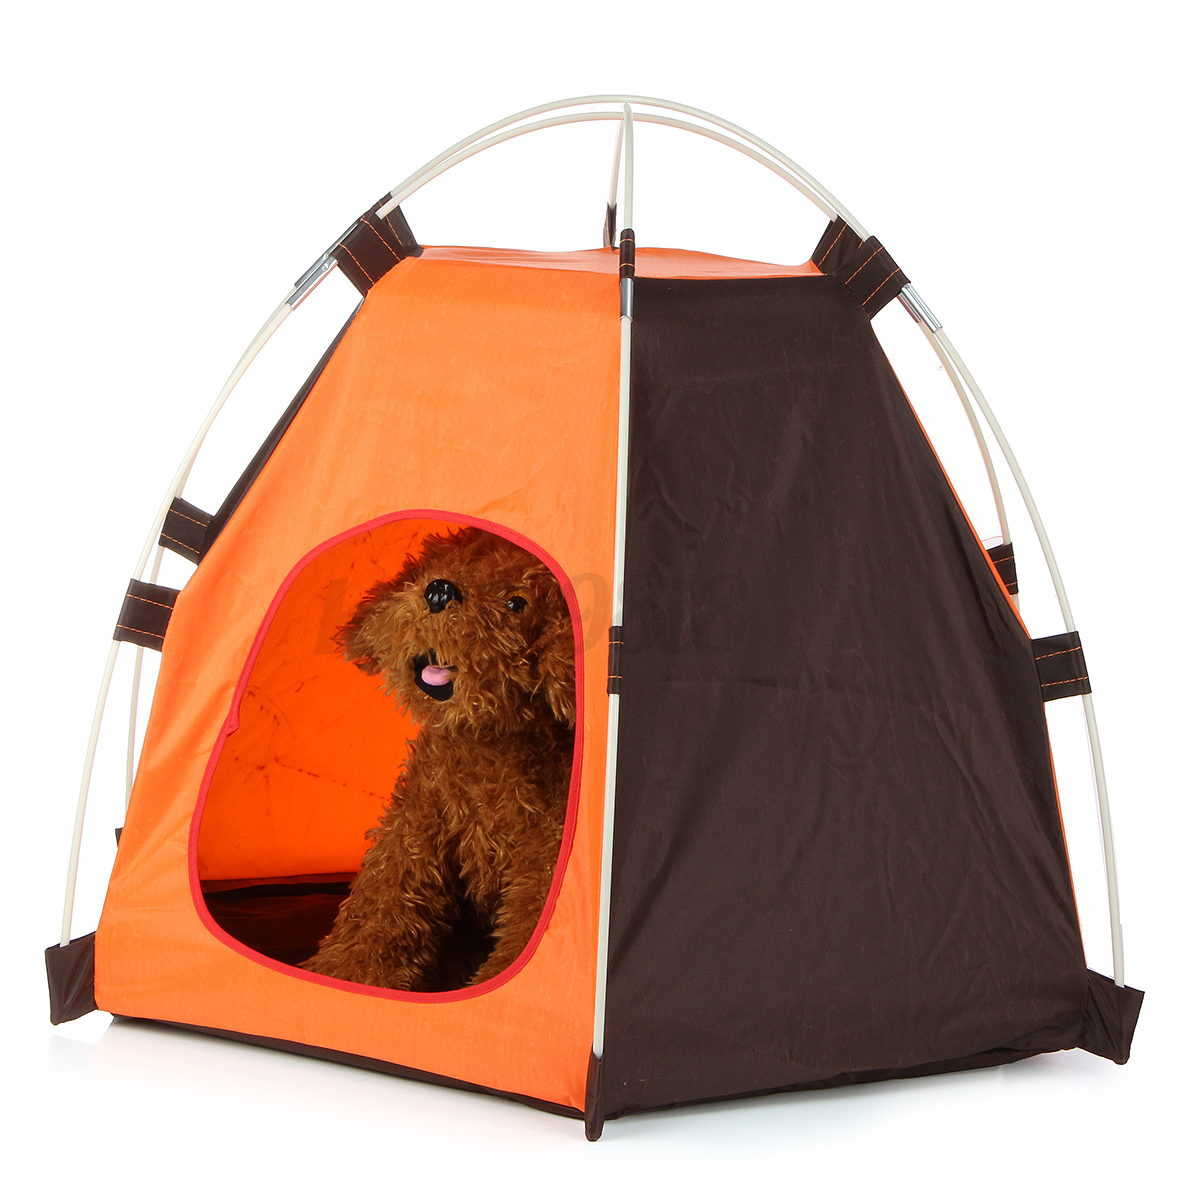 washable folding outdoor home pet play house cat dog soft bed puppy kennel tent ebay. Black Bedroom Furniture Sets. Home Design Ideas